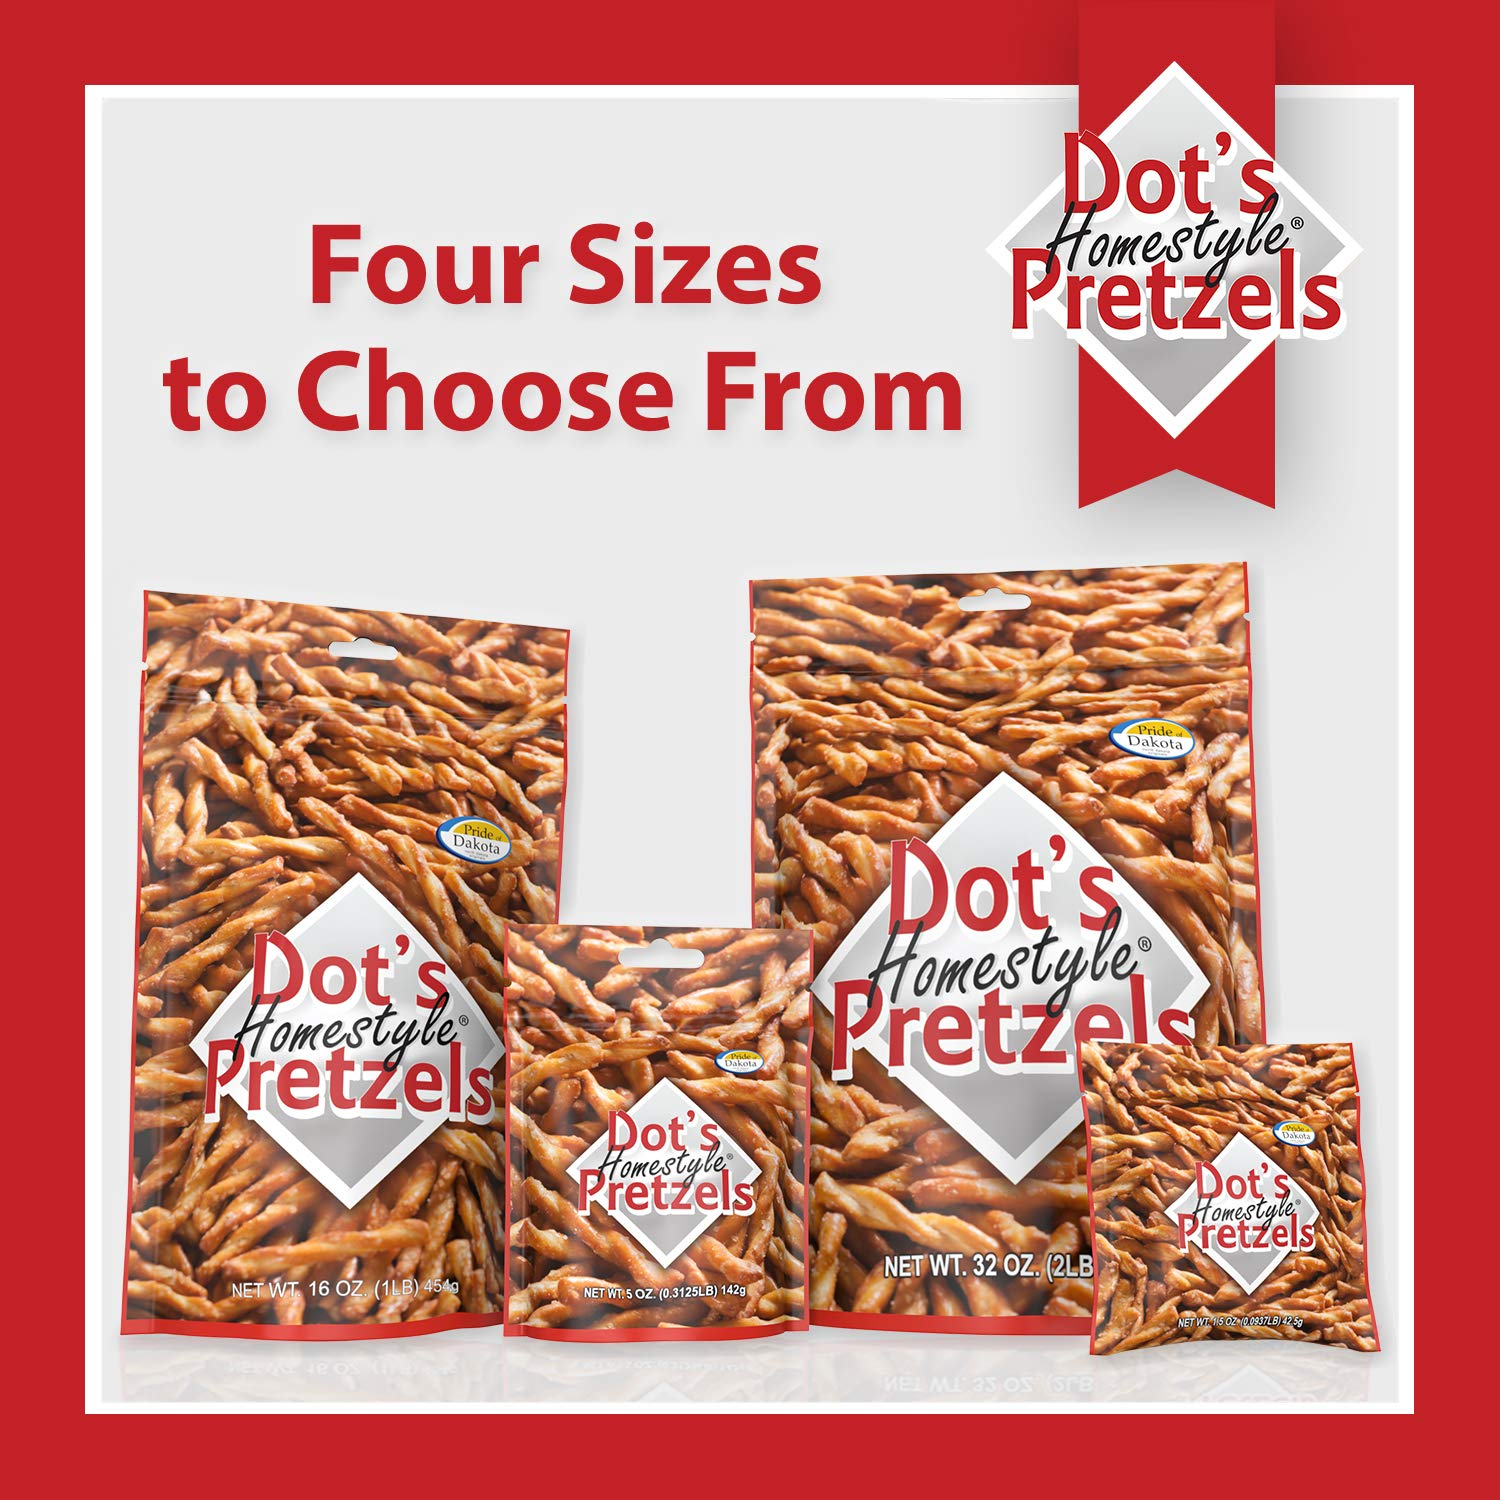 Dot's Homestyle Pretzels 2 lb. Bag (Single) 32 oz. Seasoned Pretzel Snack Sticks (Packaging May Vary) by Dot's Homestyle Pretzels (Image #2)